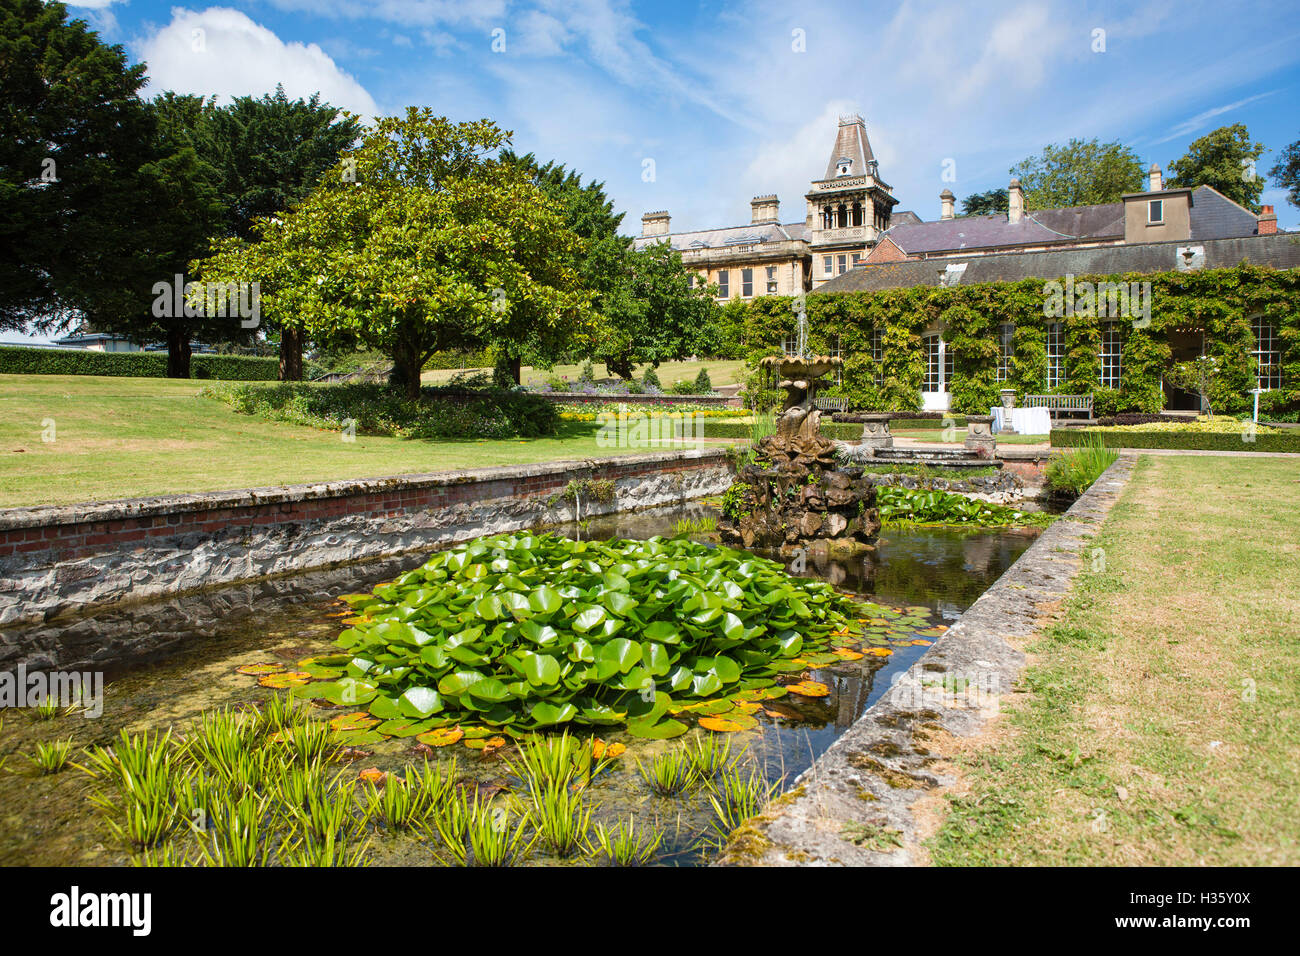 Marvelous Stock Photo   The University Of Bristol Gardens And Buildings In The Centre  Of The City